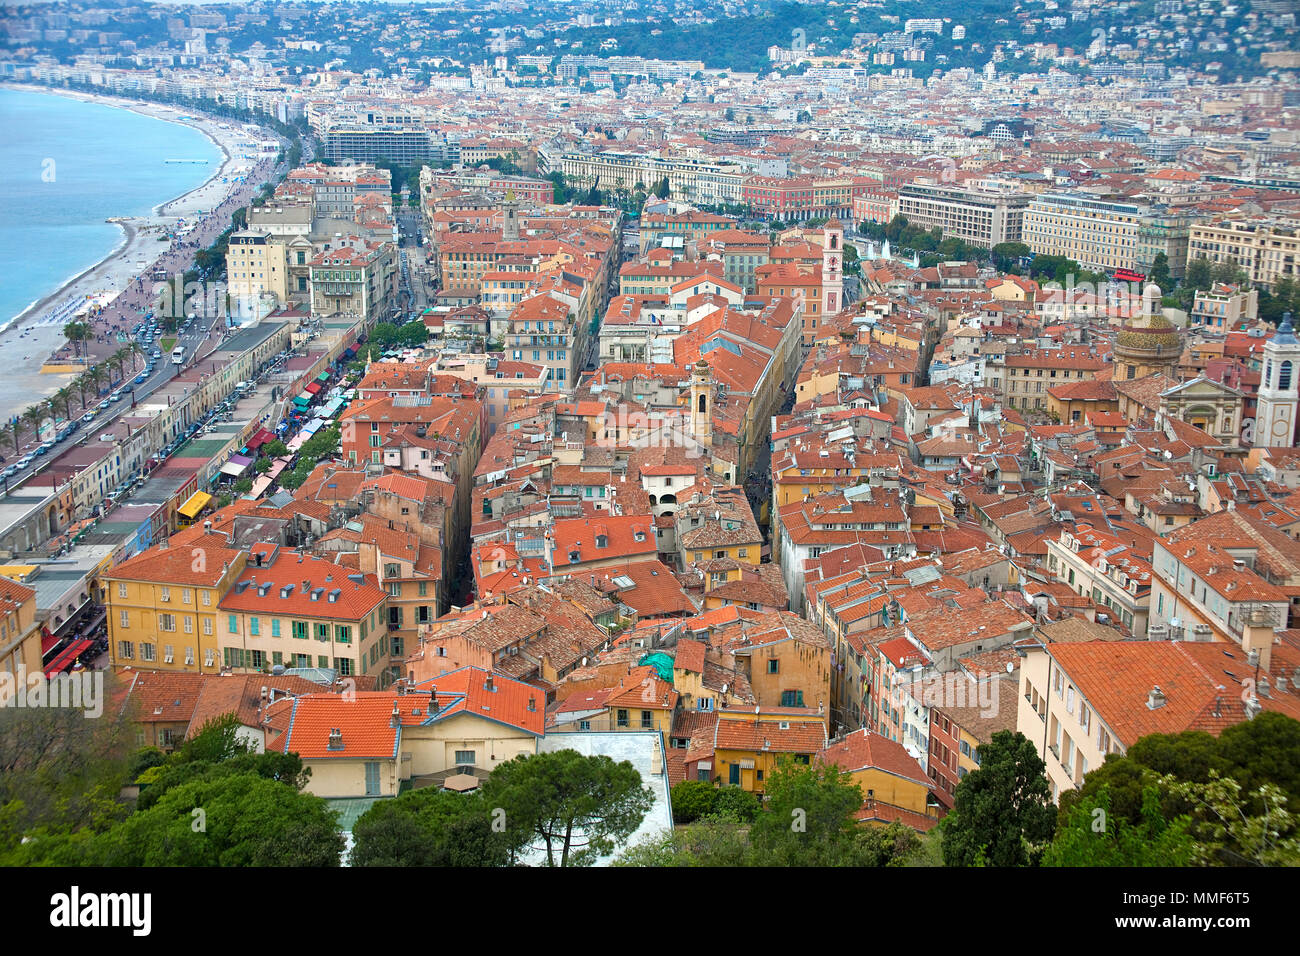 Old town and Promenade des Anglais, Nice, Côte d'Azur, Alpes-Maritimes, South France, France, Europe - Stock Image